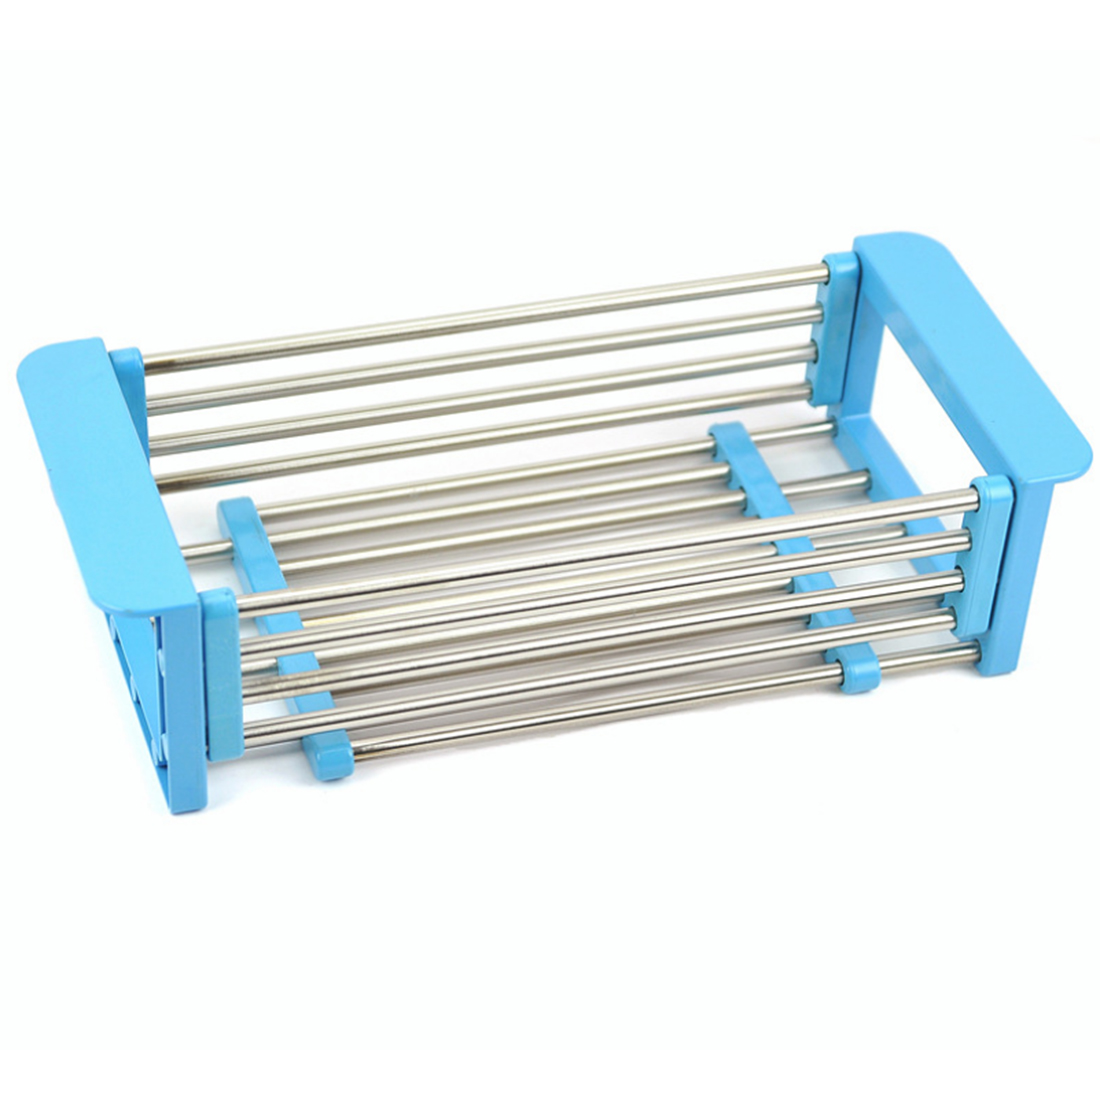 HIPSTEEN 1pcs Flexible Stainless Steel Storage Rack Single Layer Kitchen Dishes Sink Drain Board Storage Holder Organizer